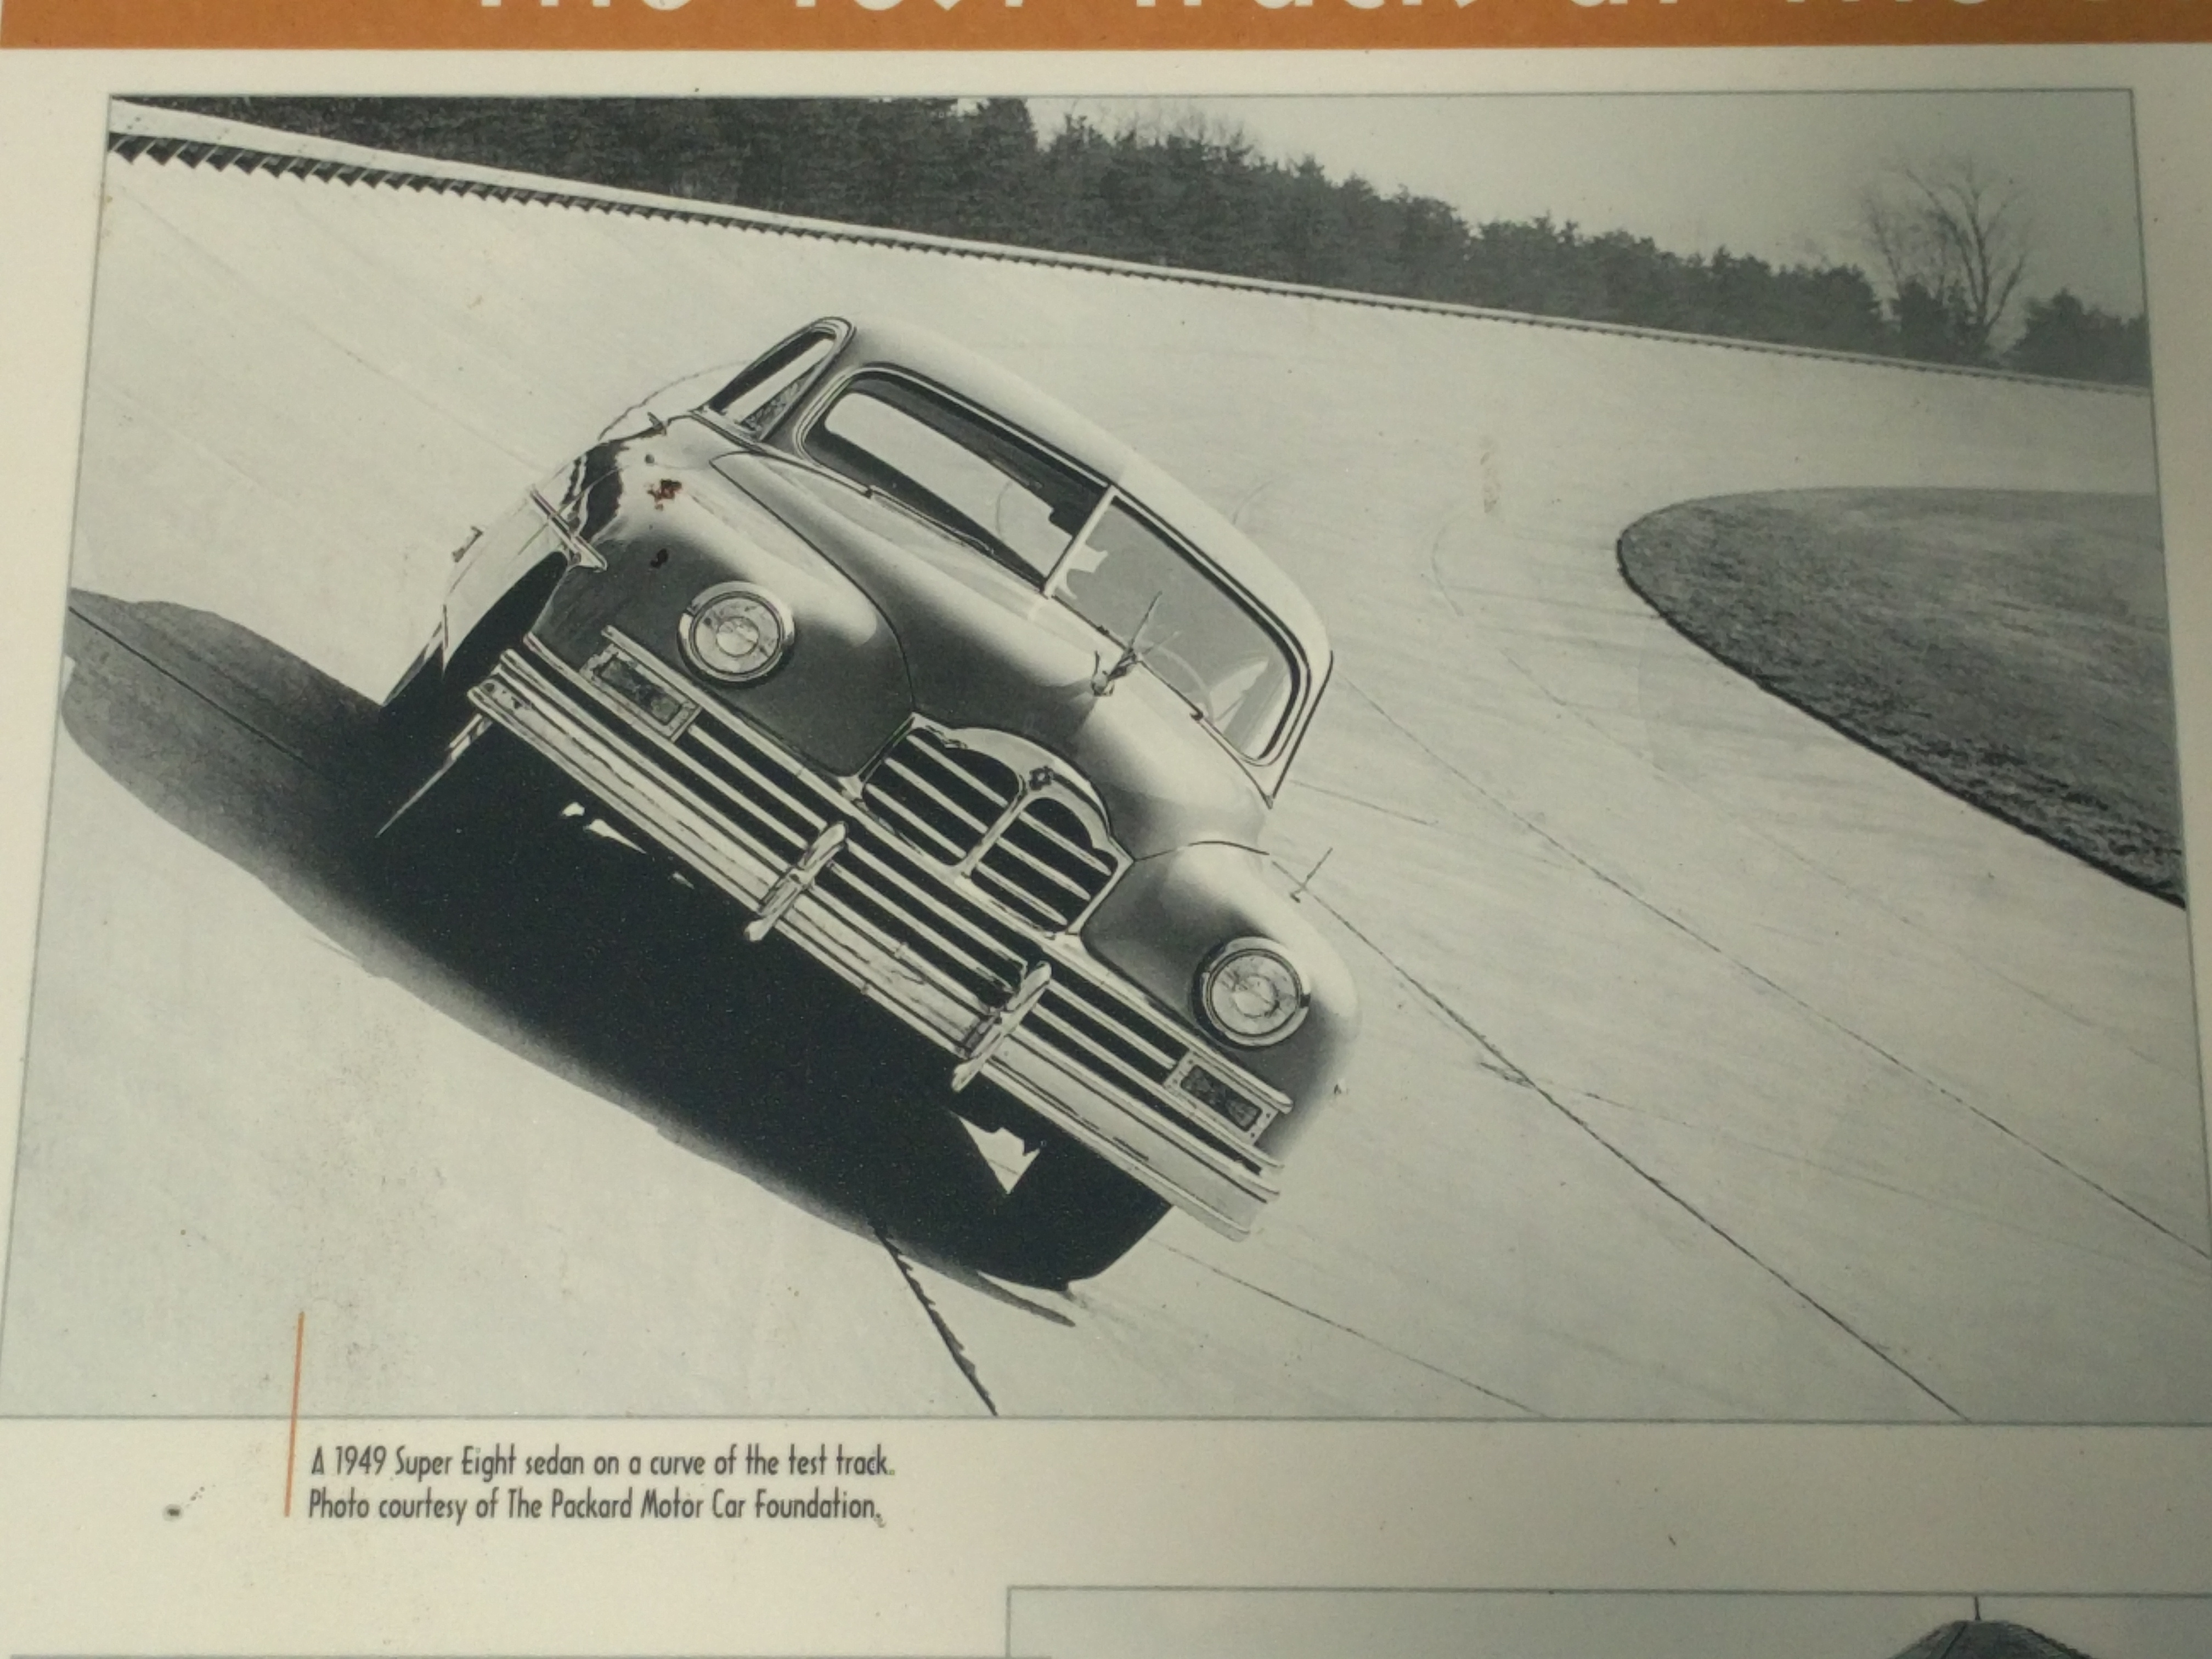 Made for Speed: The Test Track at the Proving Grounds Marker - upper left image